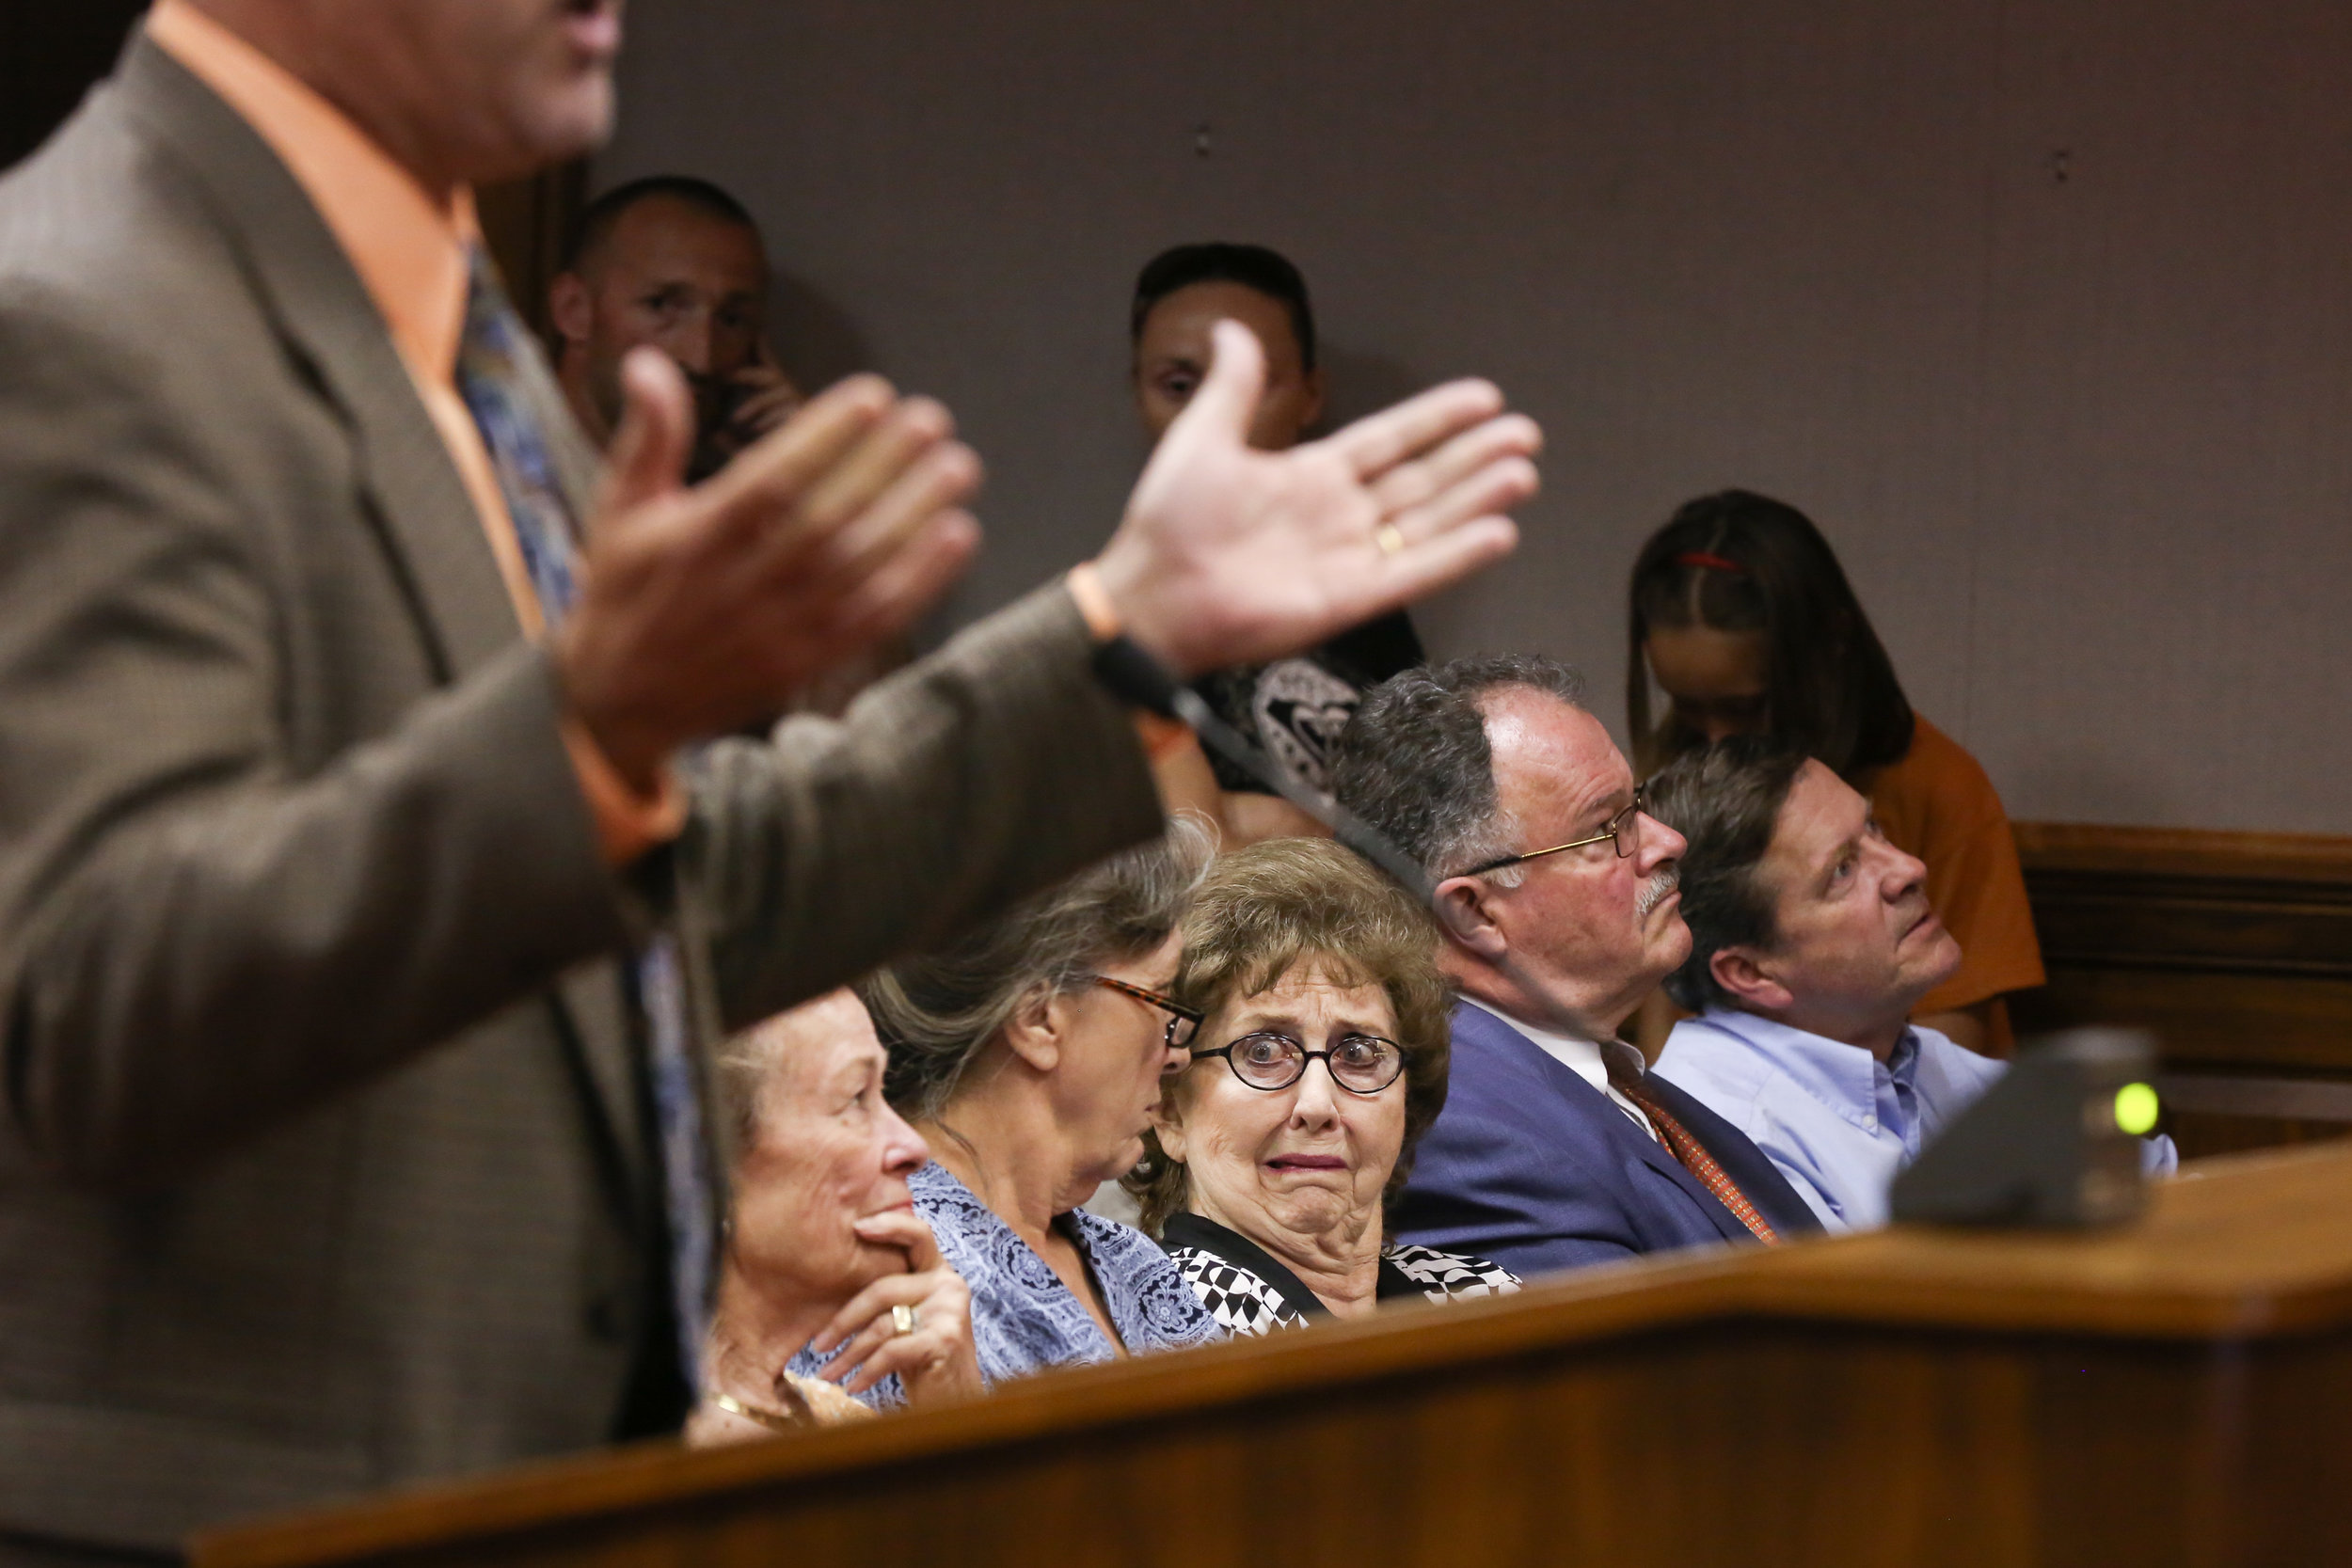 Raceway opponent Joyce Ackerman reacts to supporter Edwin Purdue during a public hearing in Spotsylvania County